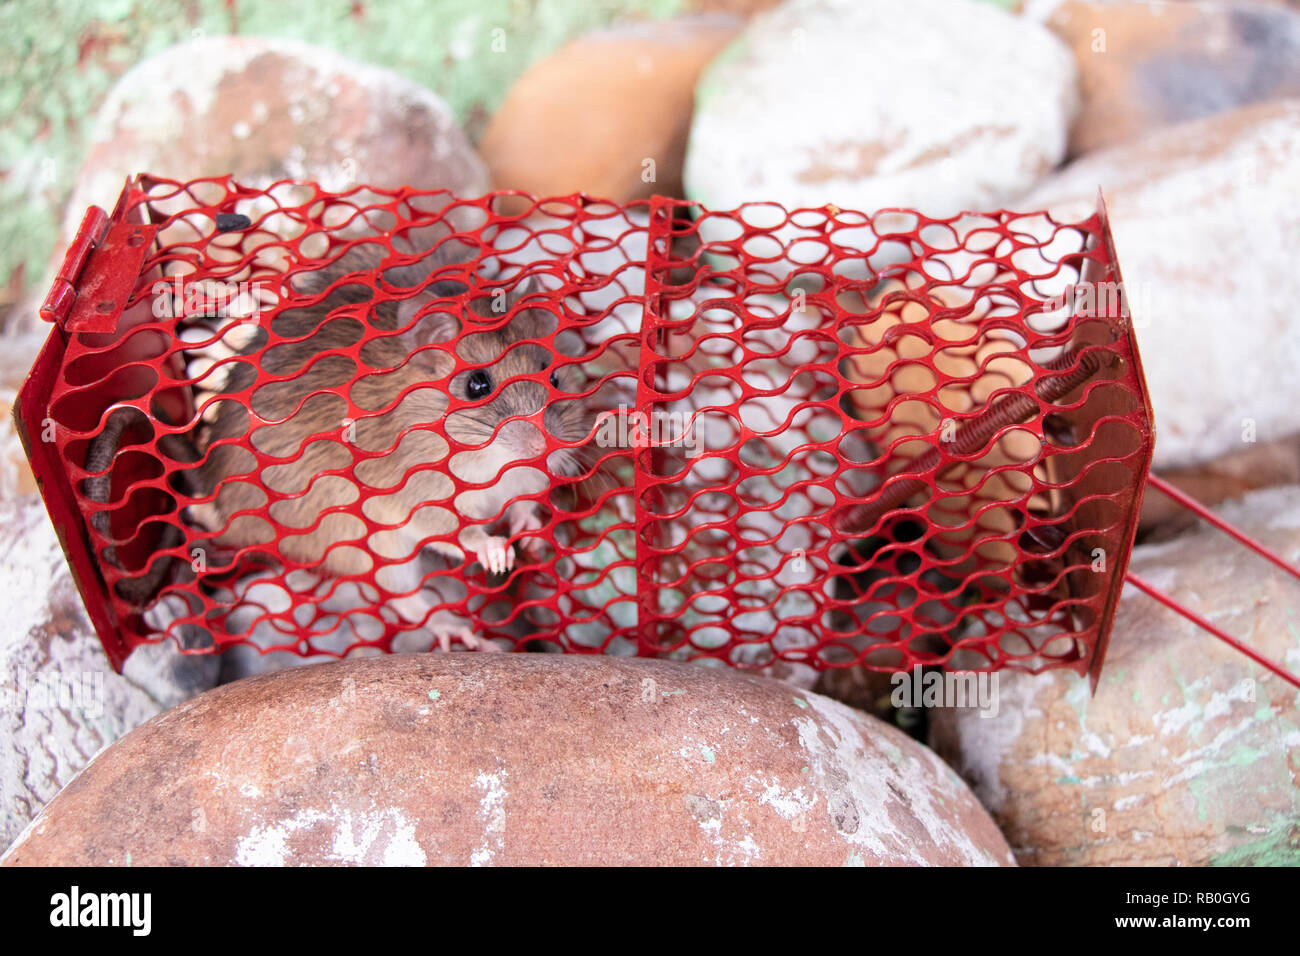 Mouse or rat trapped in a red cage, rat inside the mousetrap cage lying on stone - Stock Image